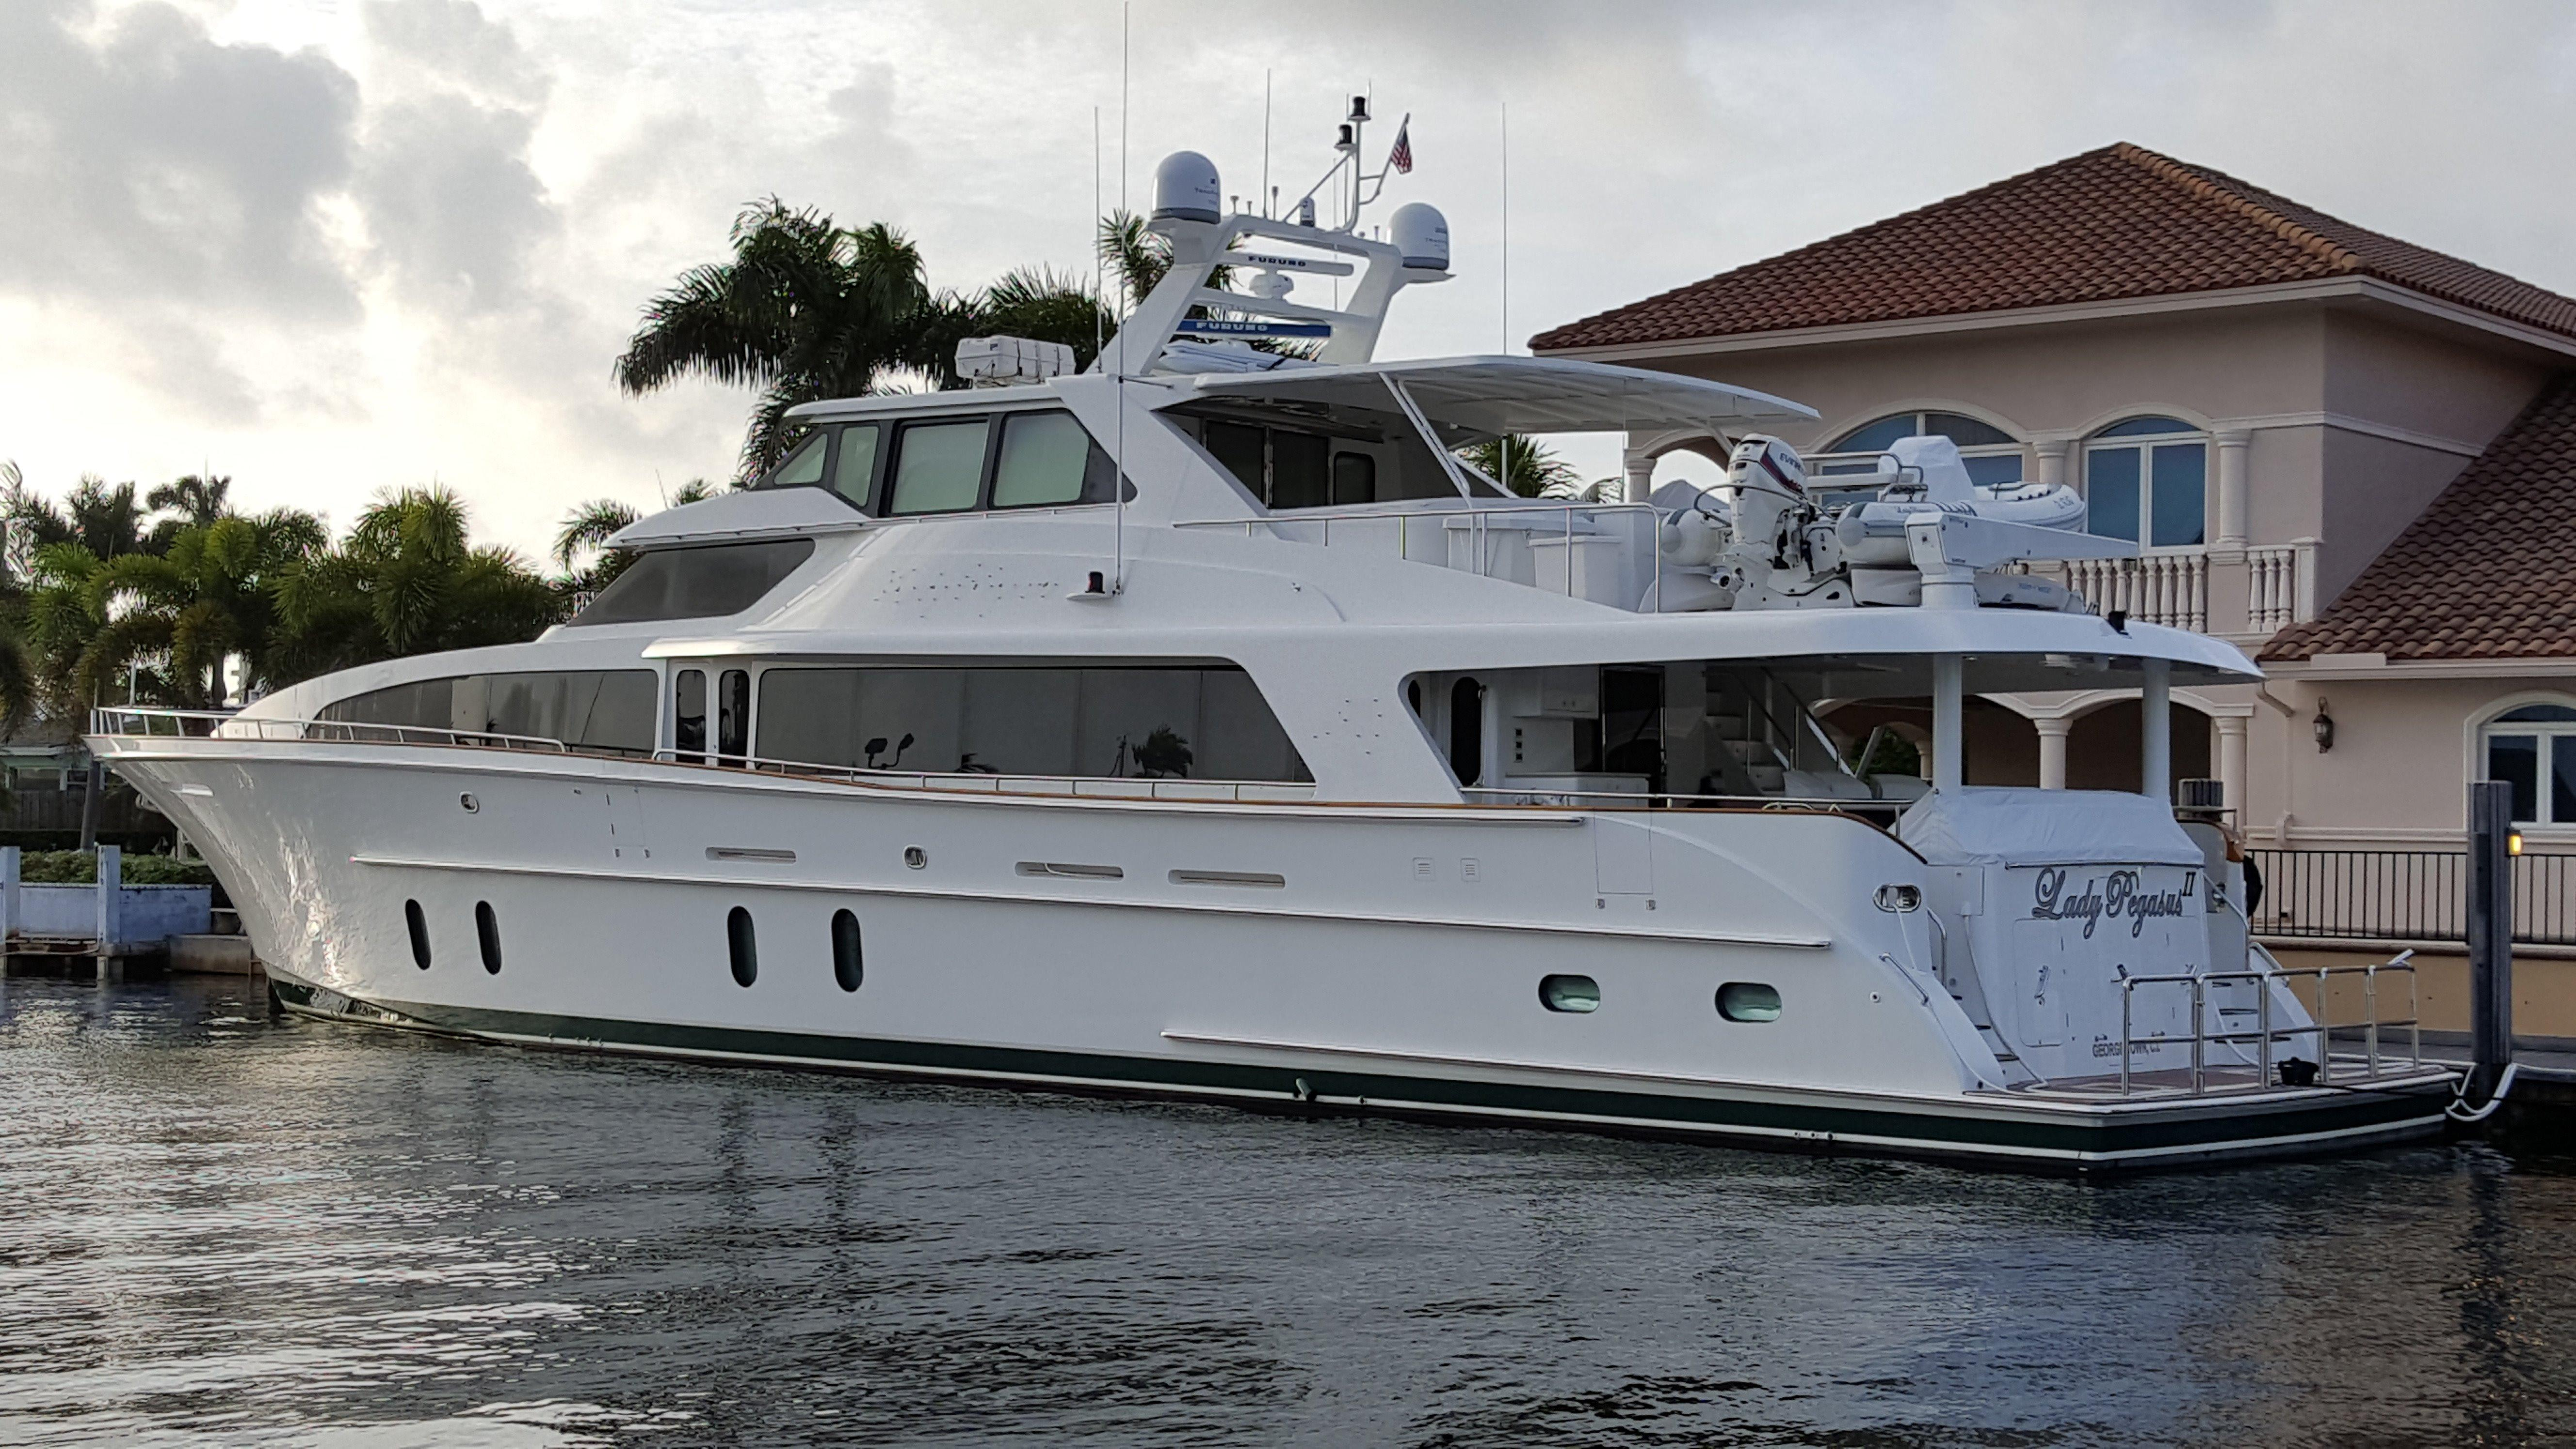 Midnight Express Boat For Sale >> Lady Pegasus Cheoy Lee 100 Yachts for Sale